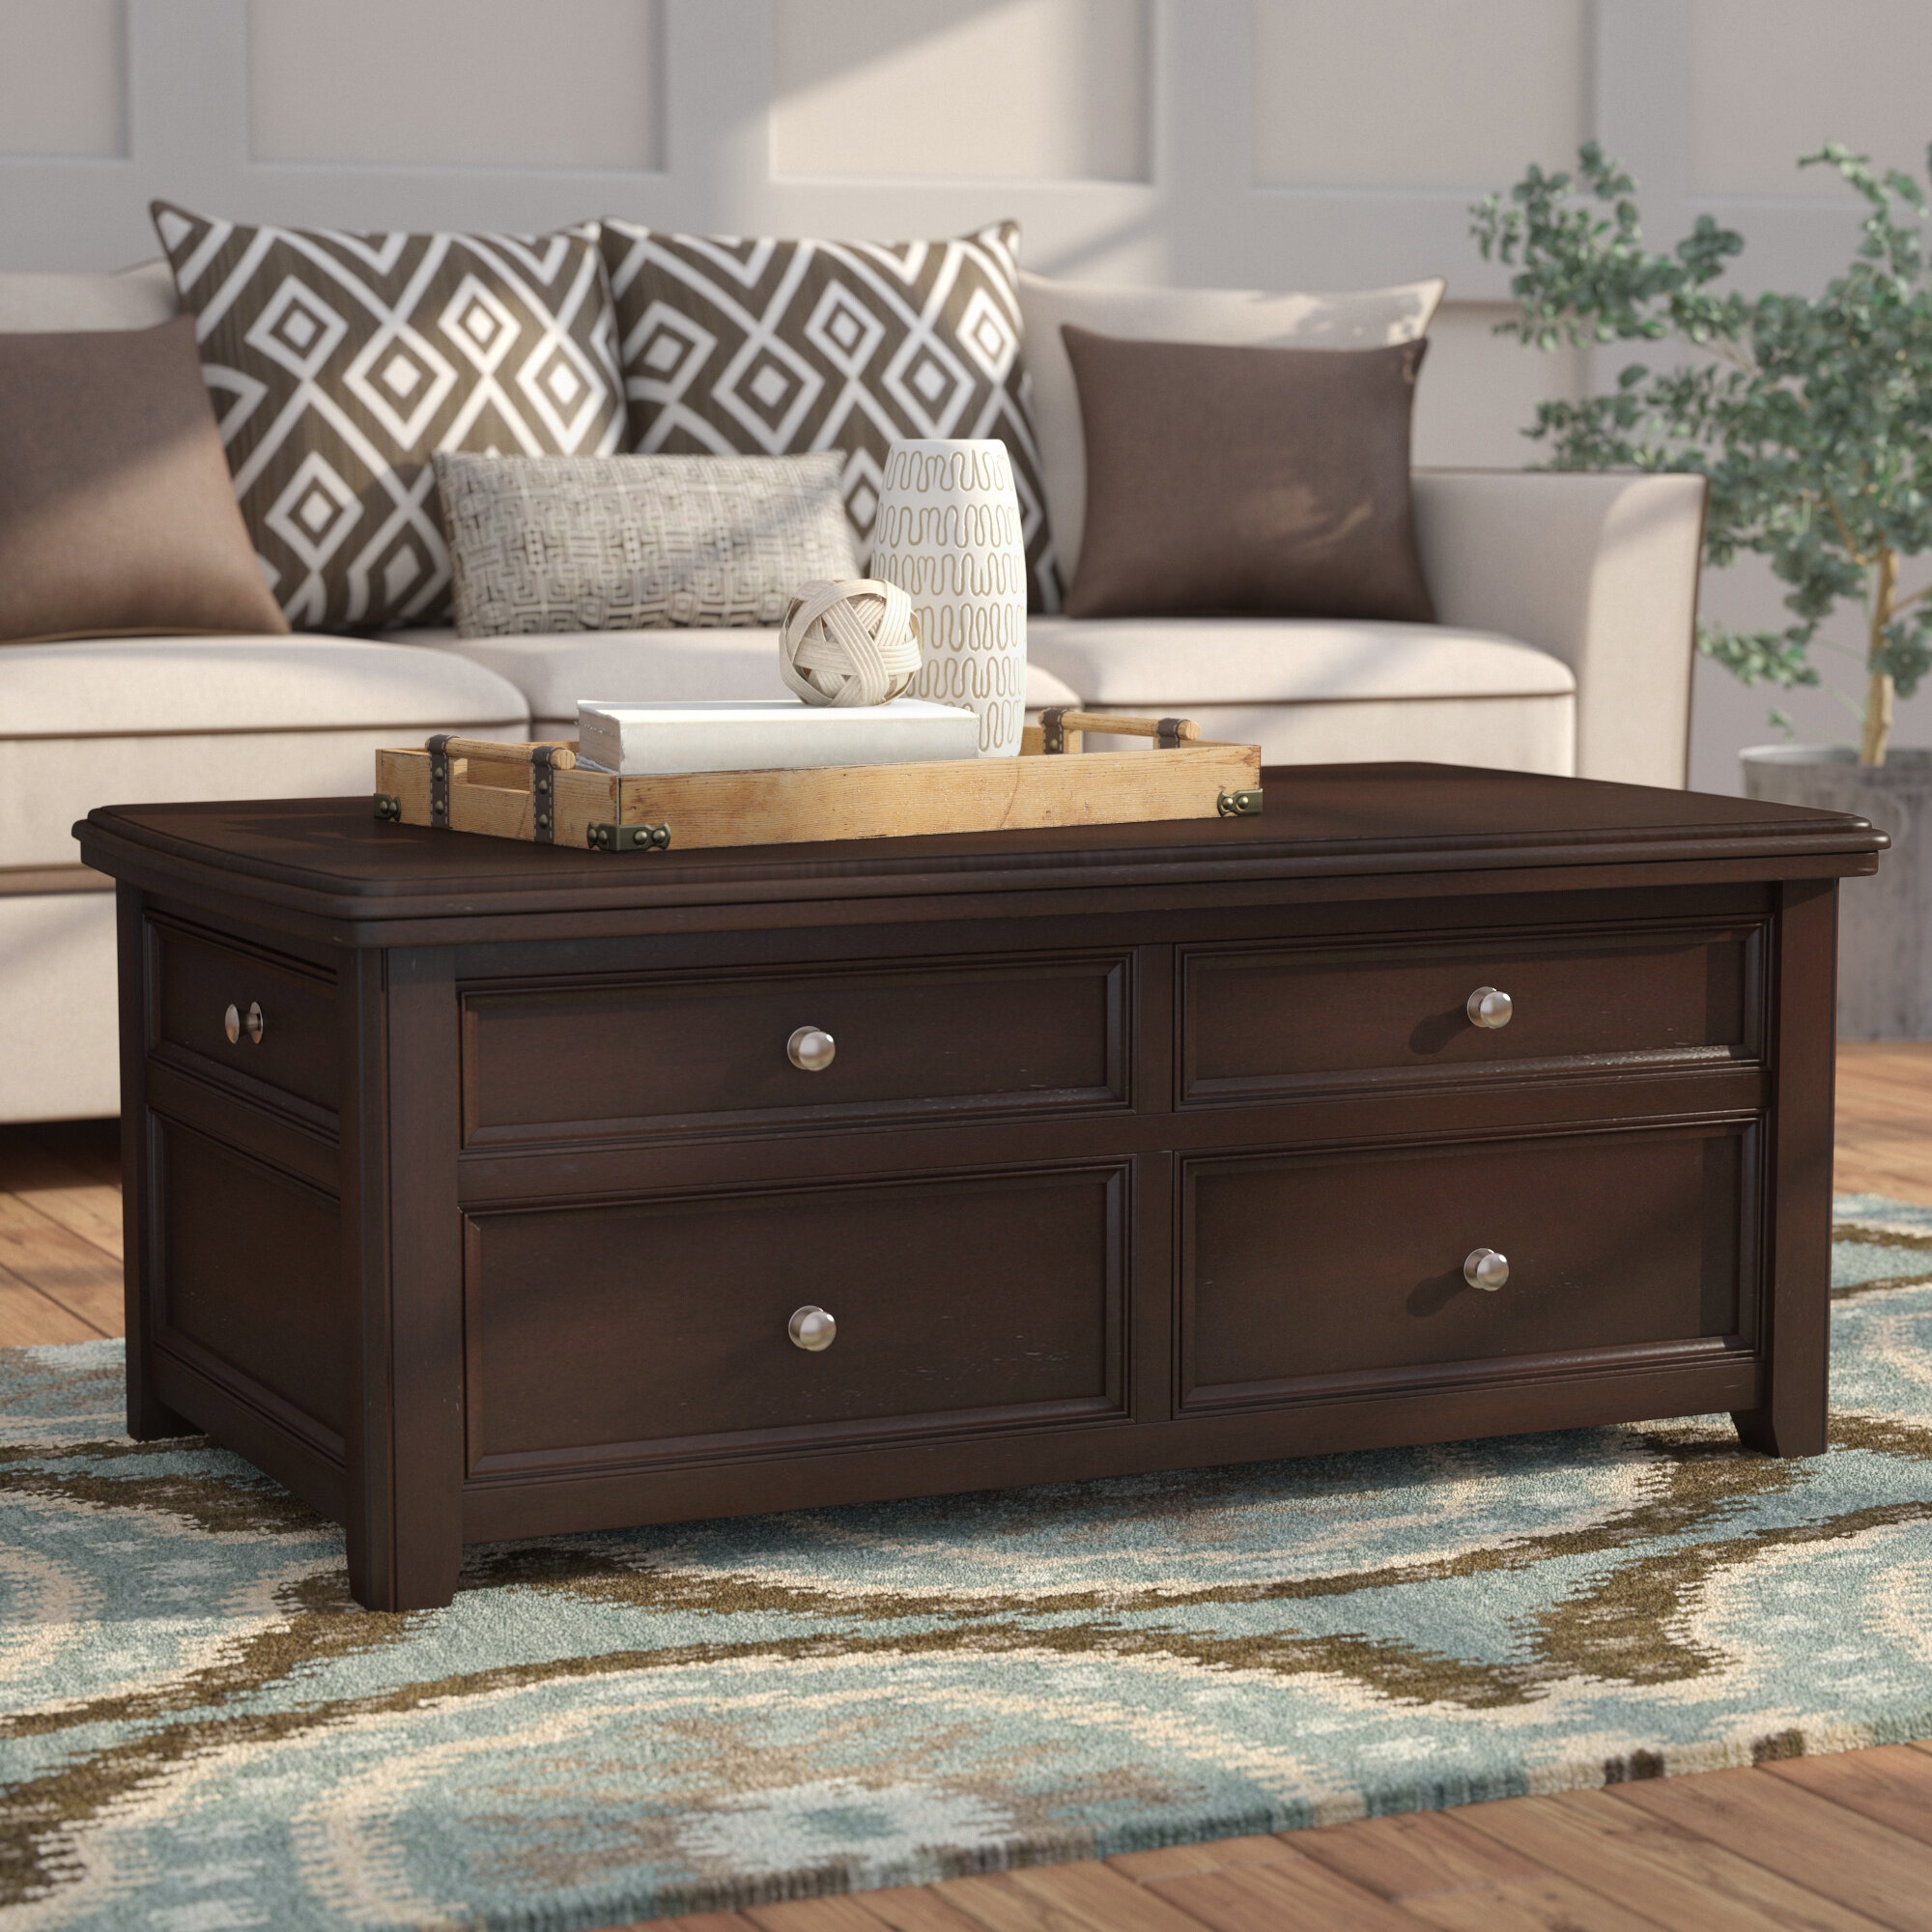 Darby Home Co Han Trunk Coffee Table With Lift Top Reviews Wayfair